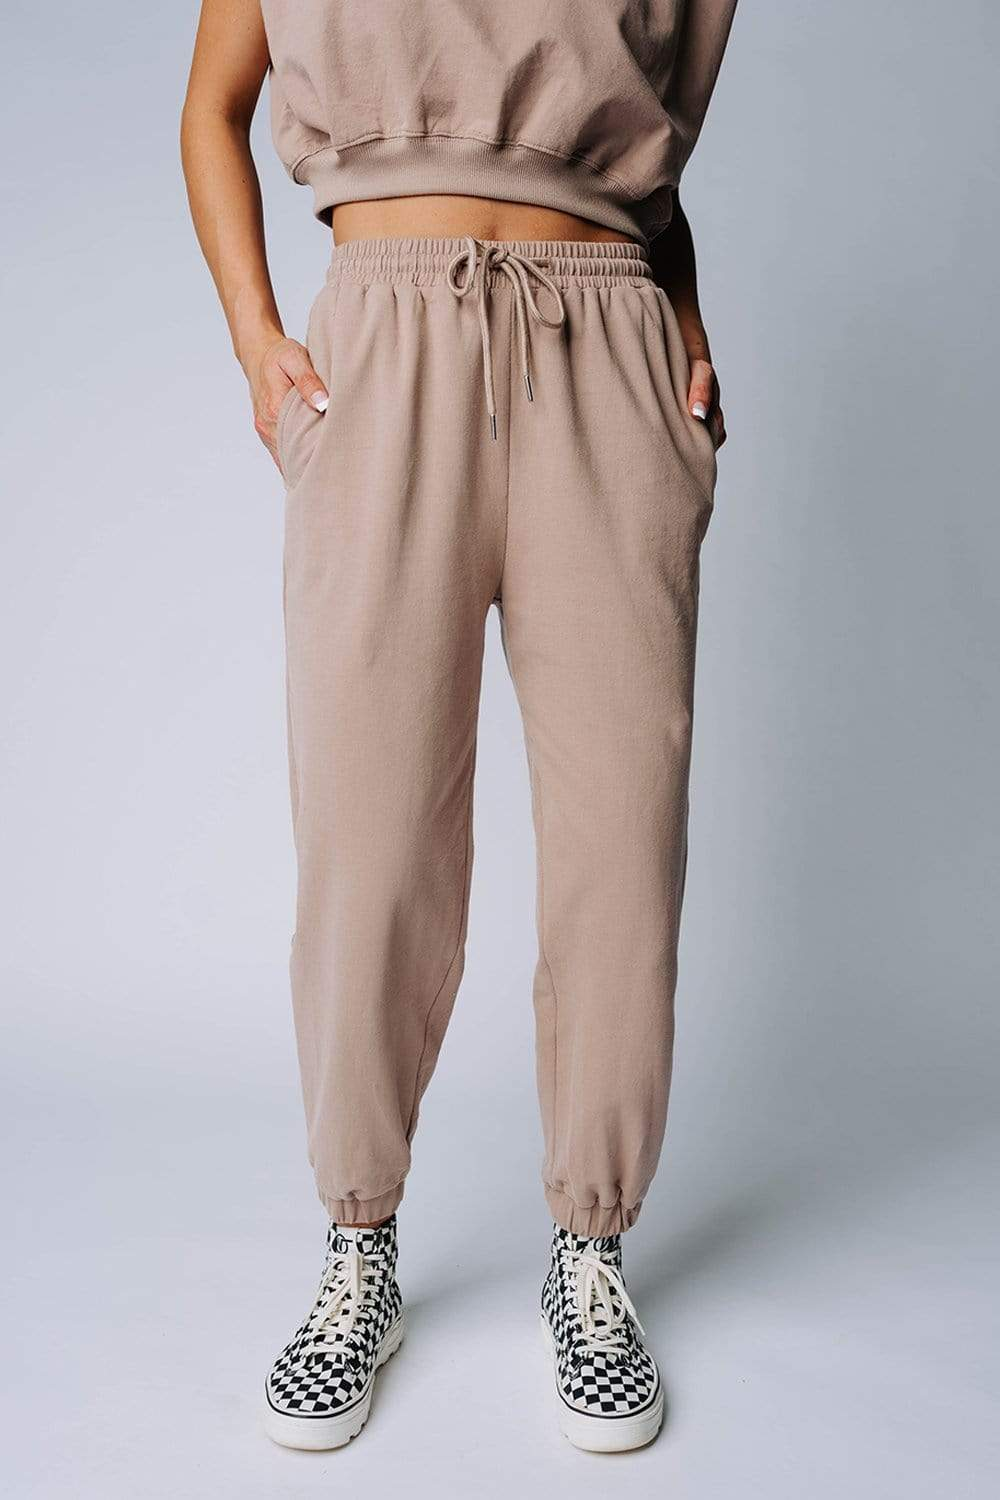 Angie Sweat Pants